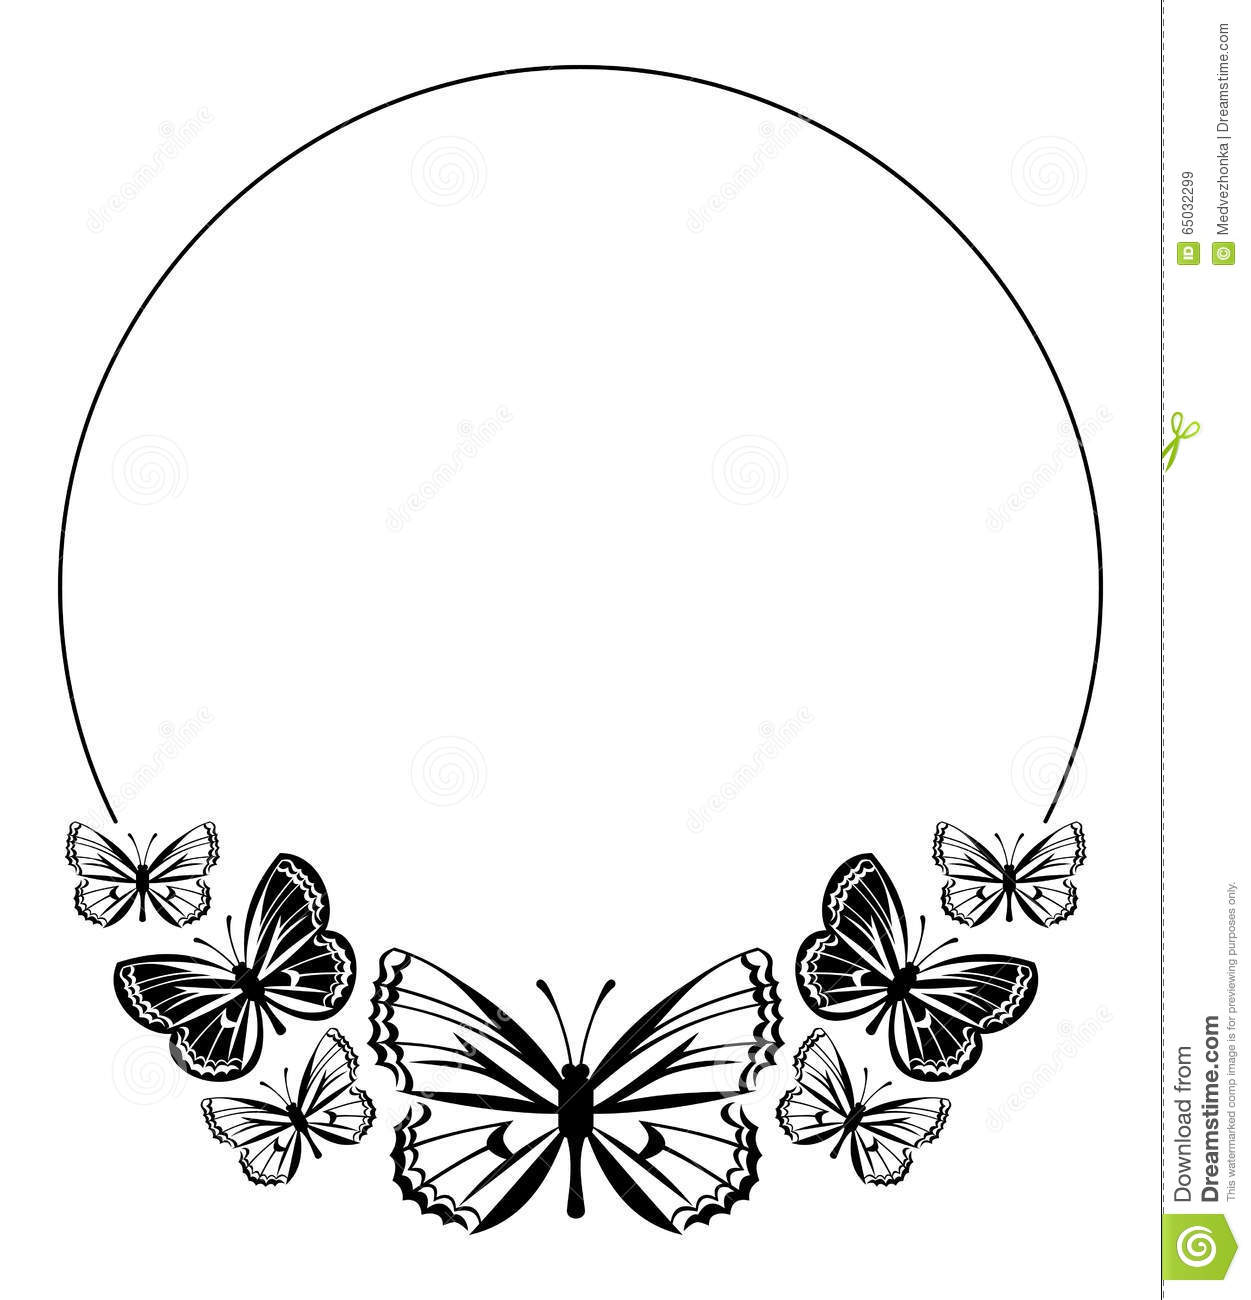 Round Frame With Butterflies Stock Illustration - Illustration of ...